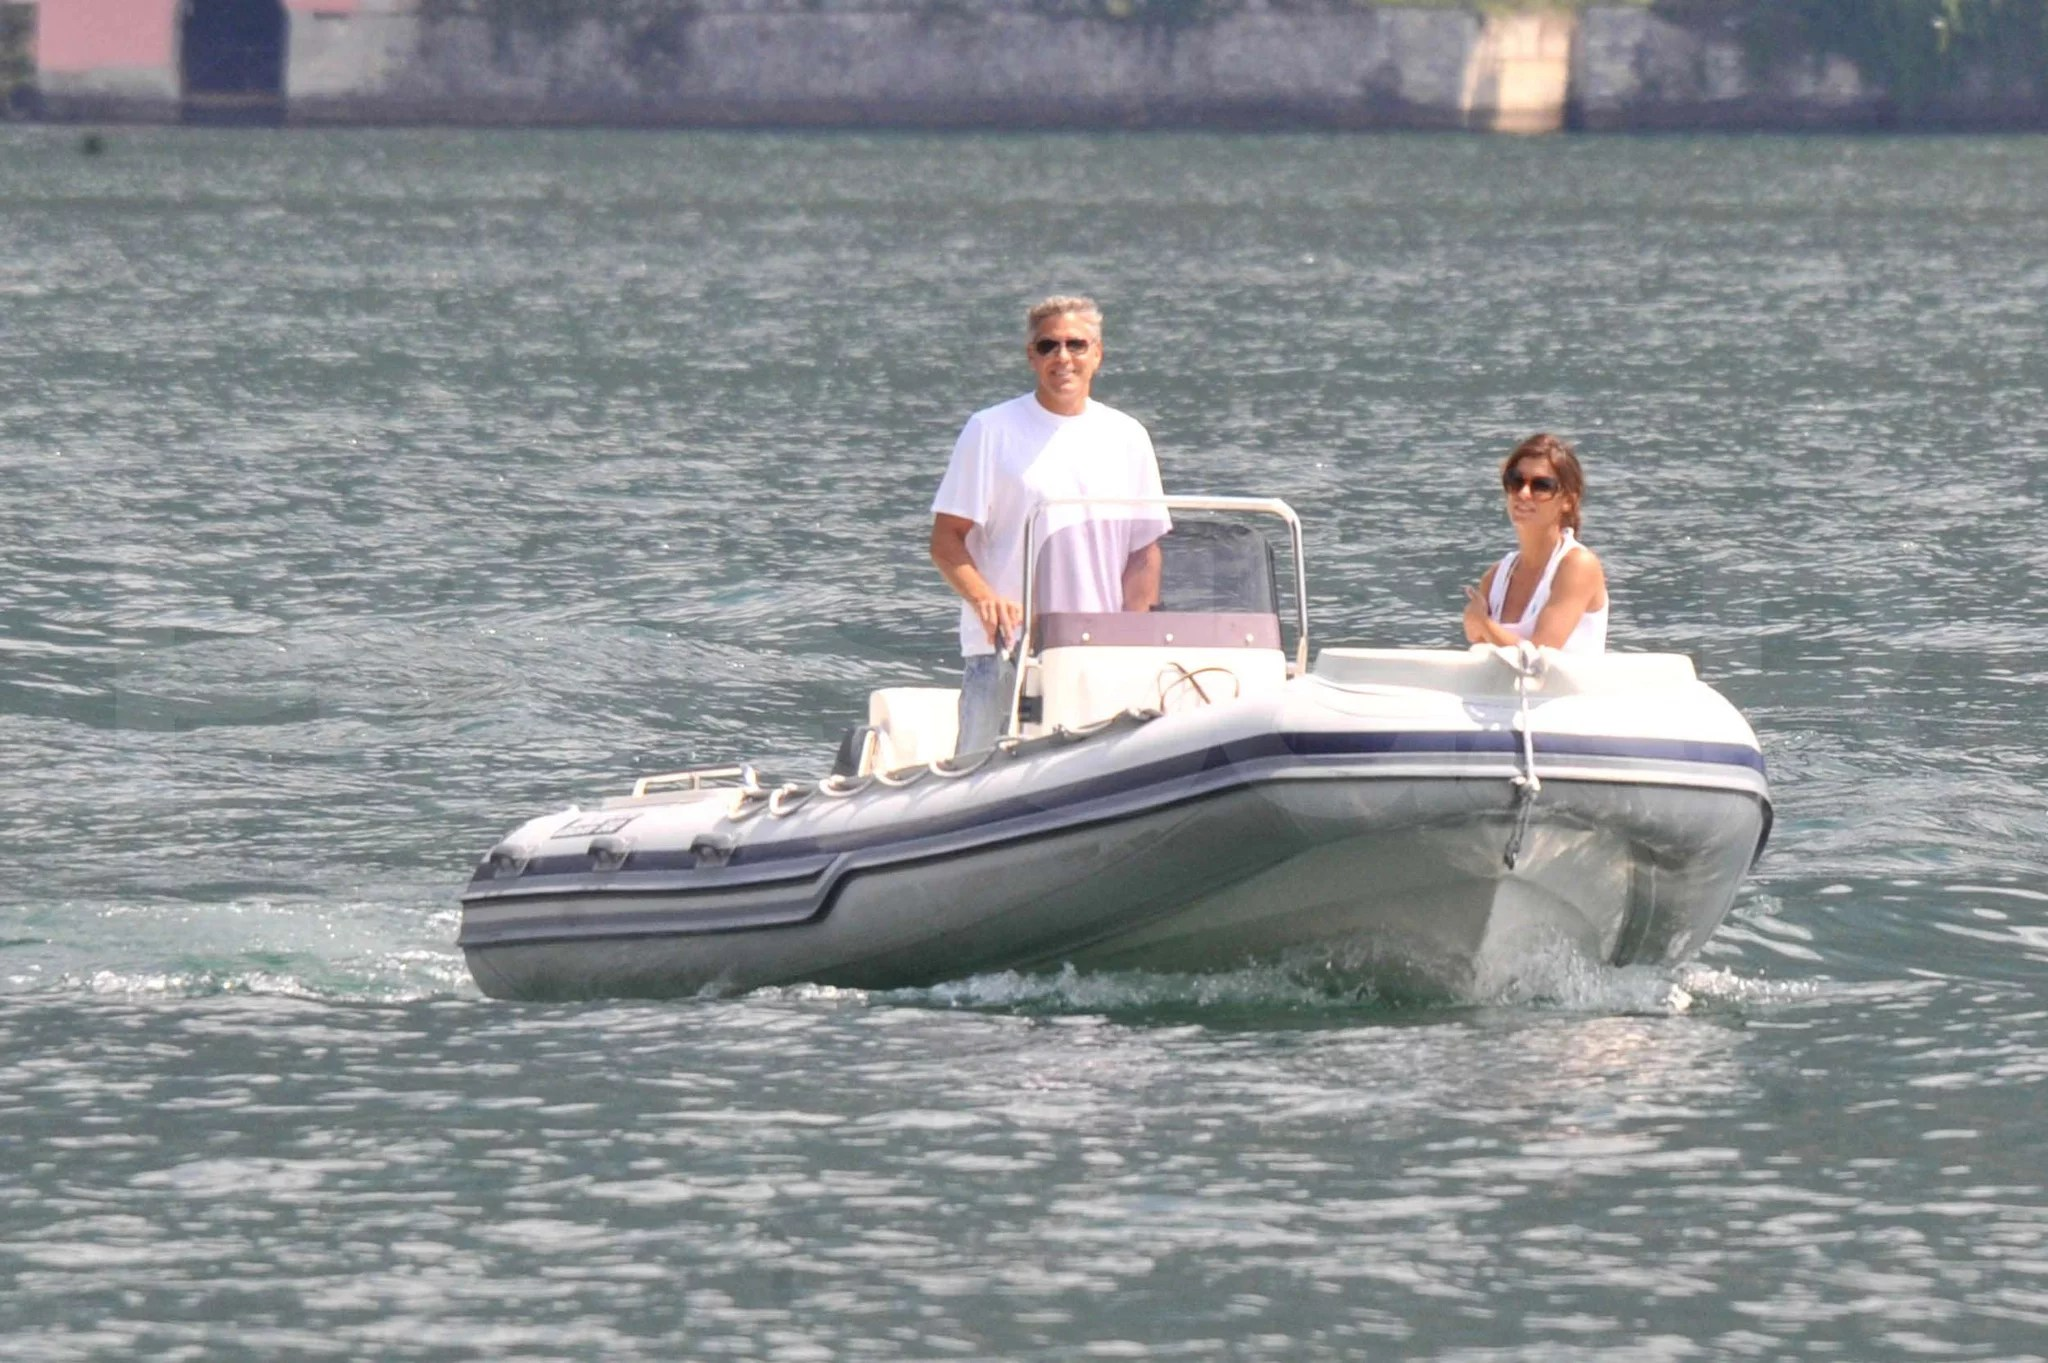 Photos Of George Clooney And Elisabetta Canalis On Boat In